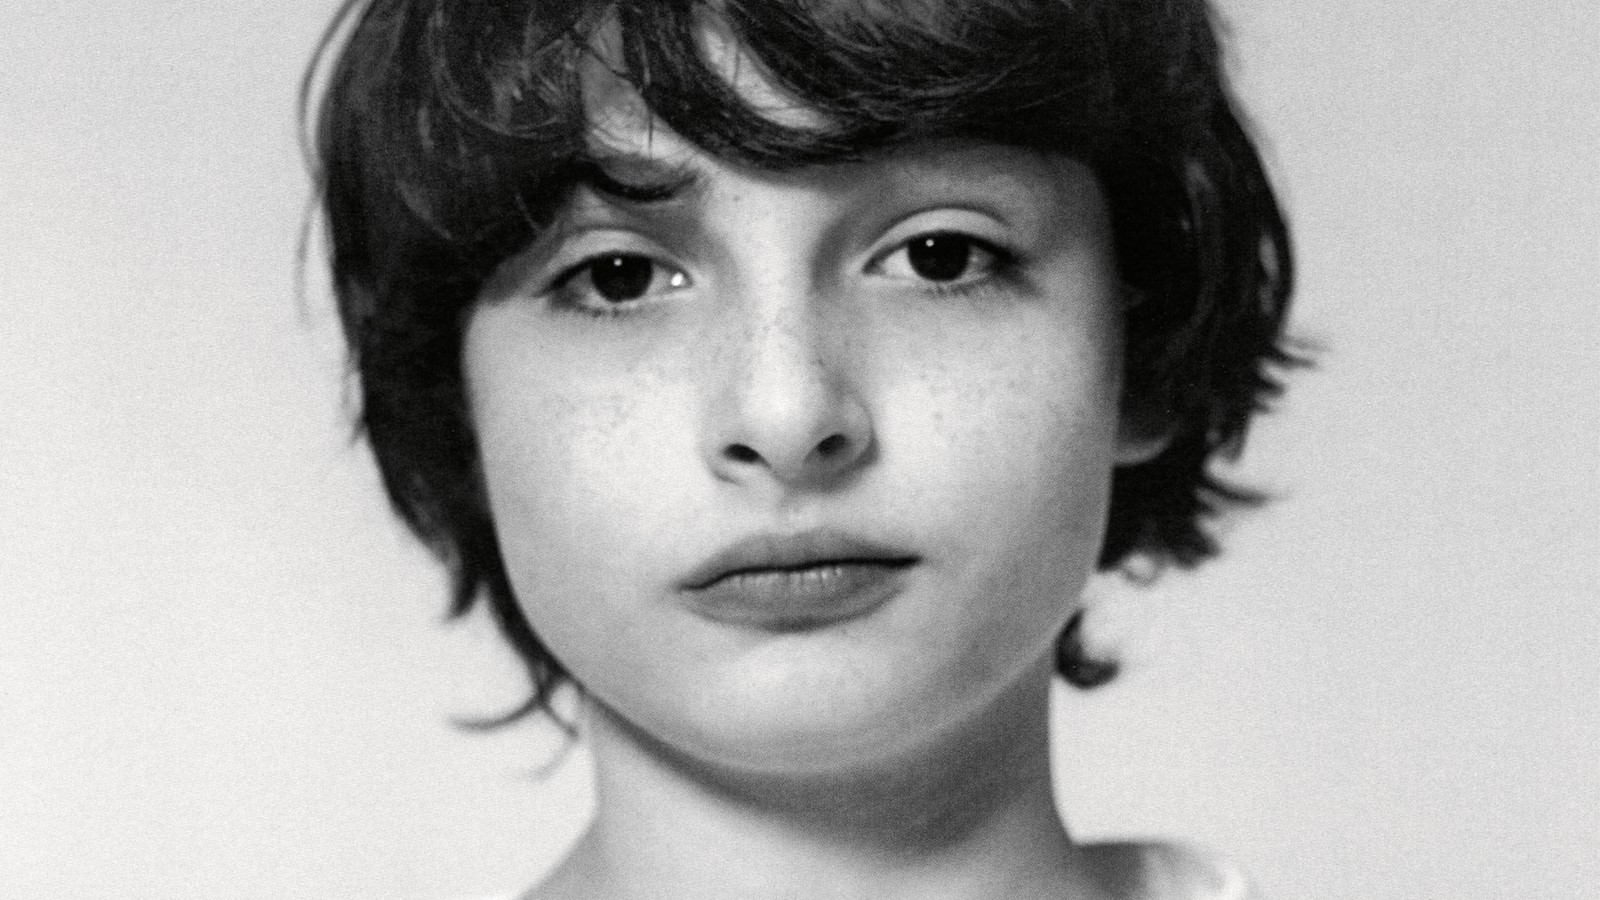 Finn Wolfhard Collier Schorr Robbie Spencer Dazed 2016